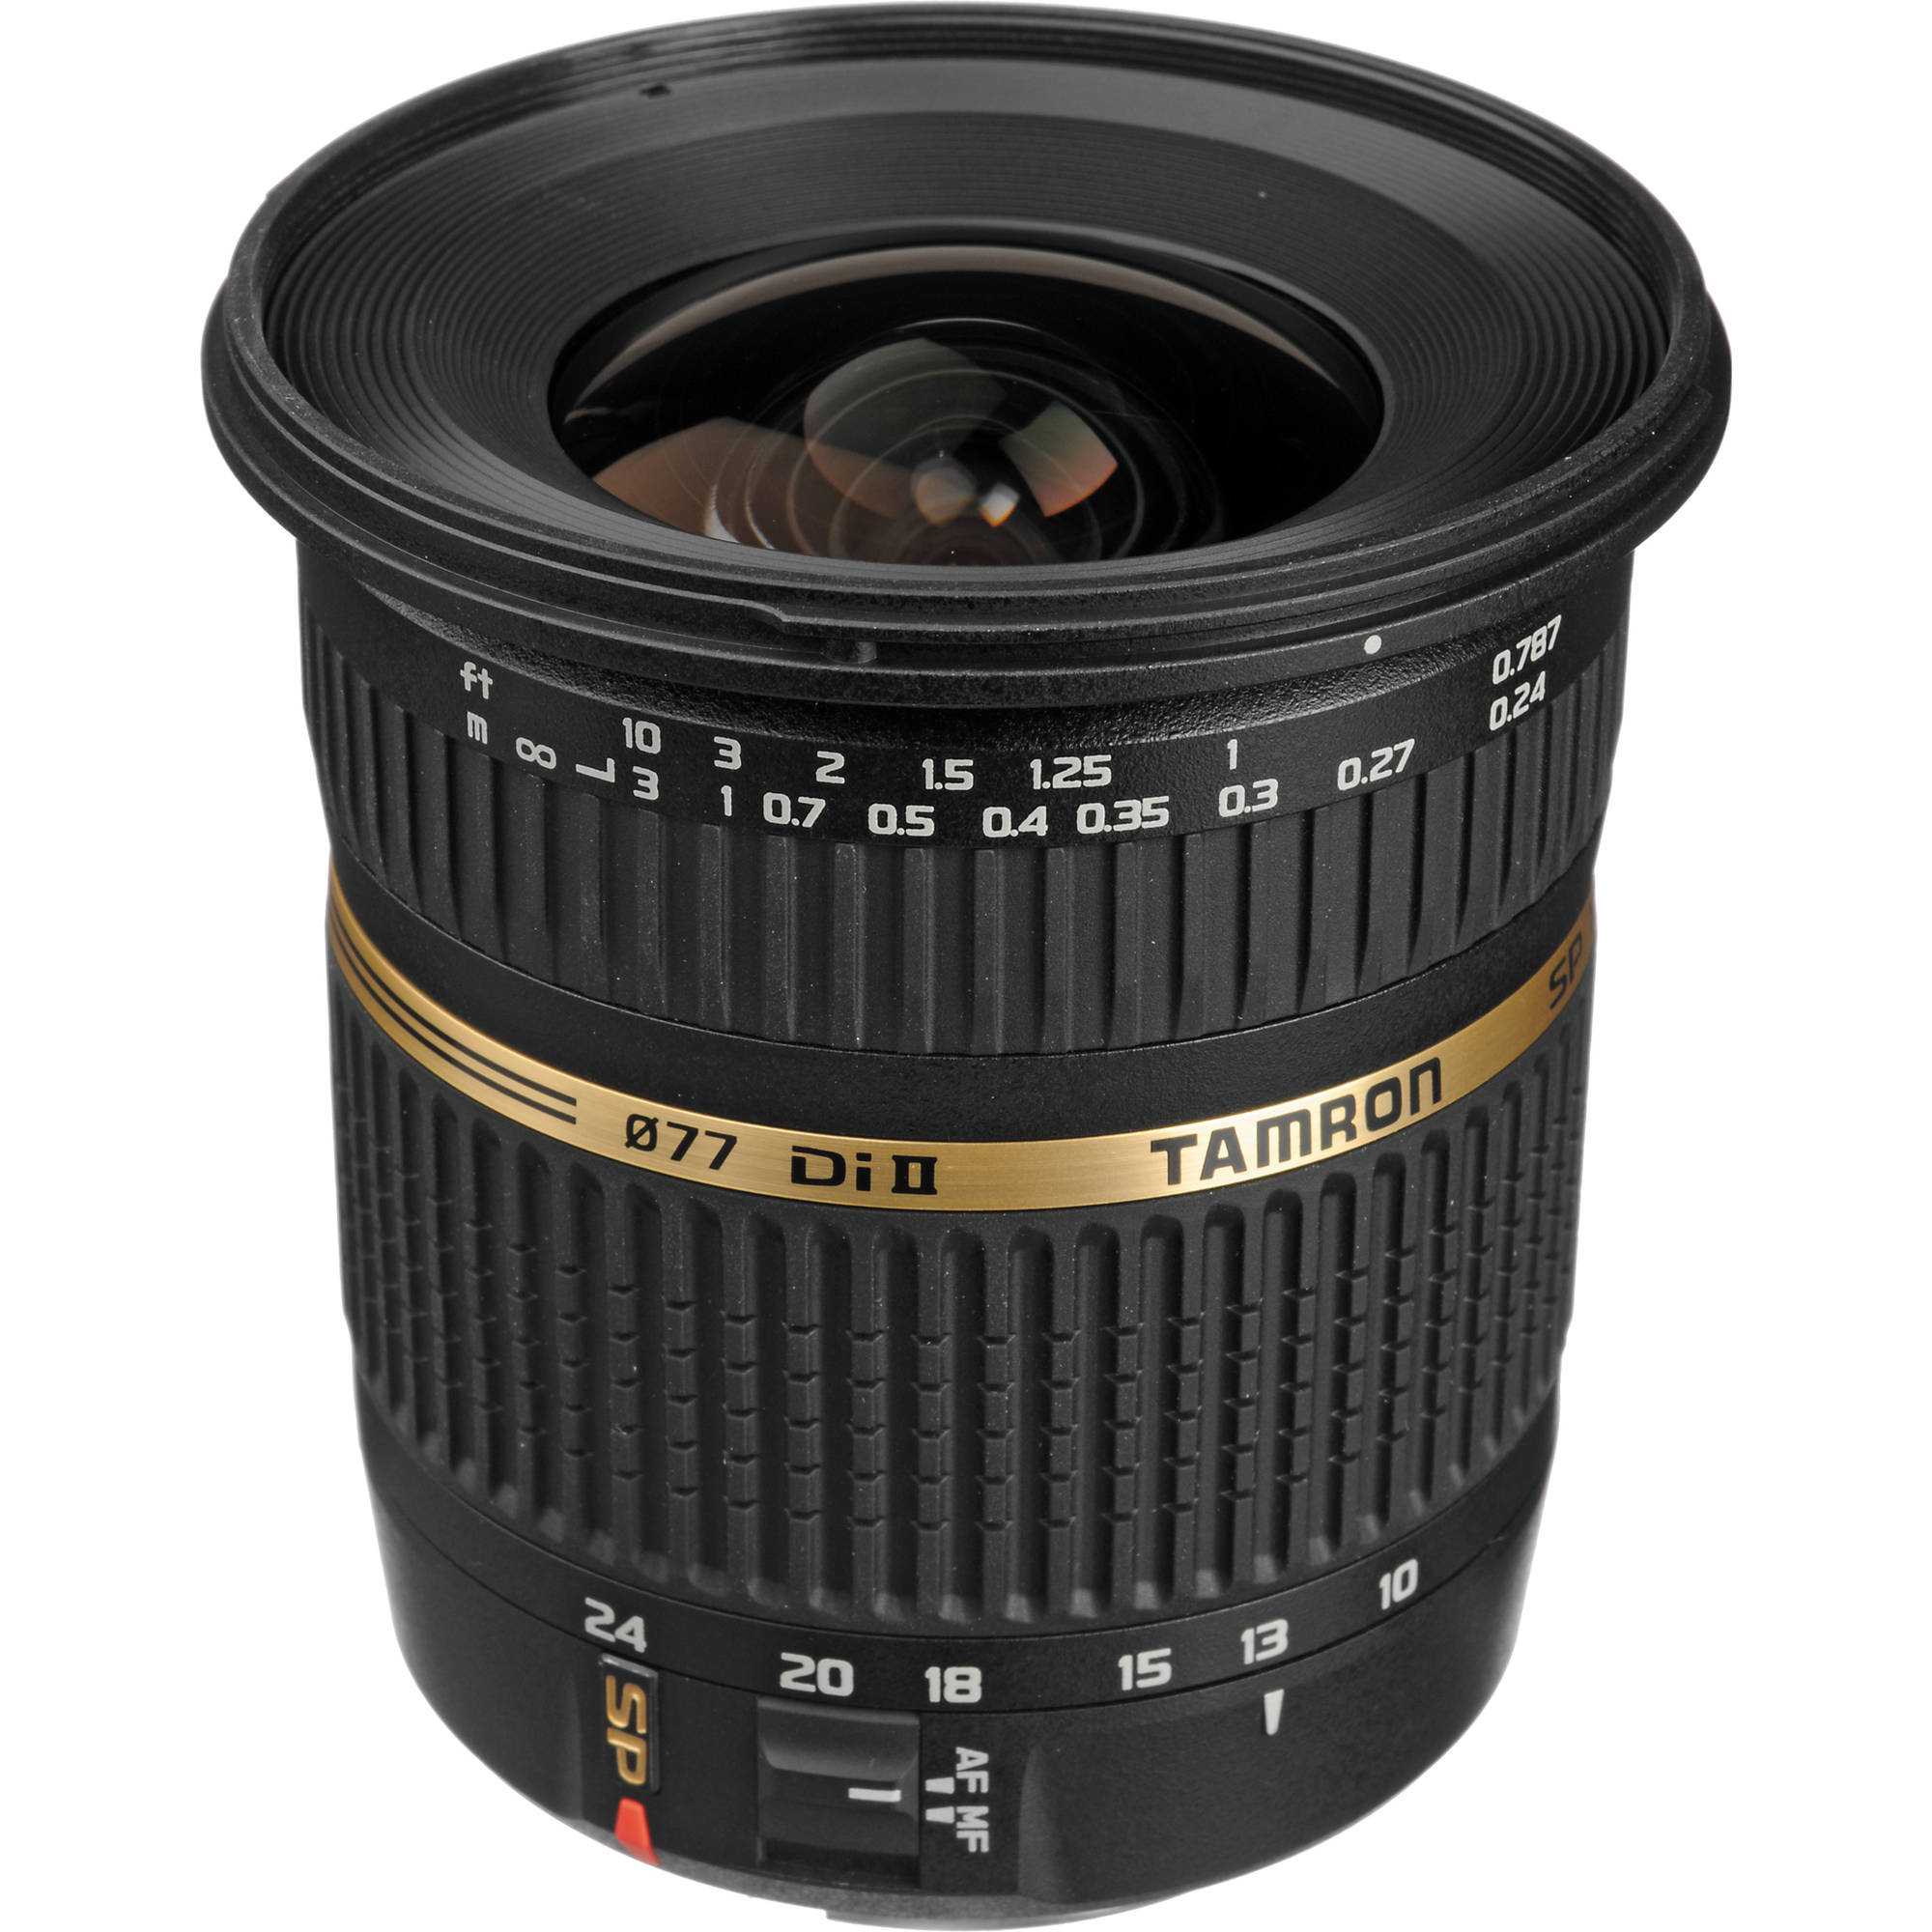 Image of Tamron SP AF 10-24mm f/3.5-4.5 Di II LD Aspherical (IF) Macro Lens For Canon Mount